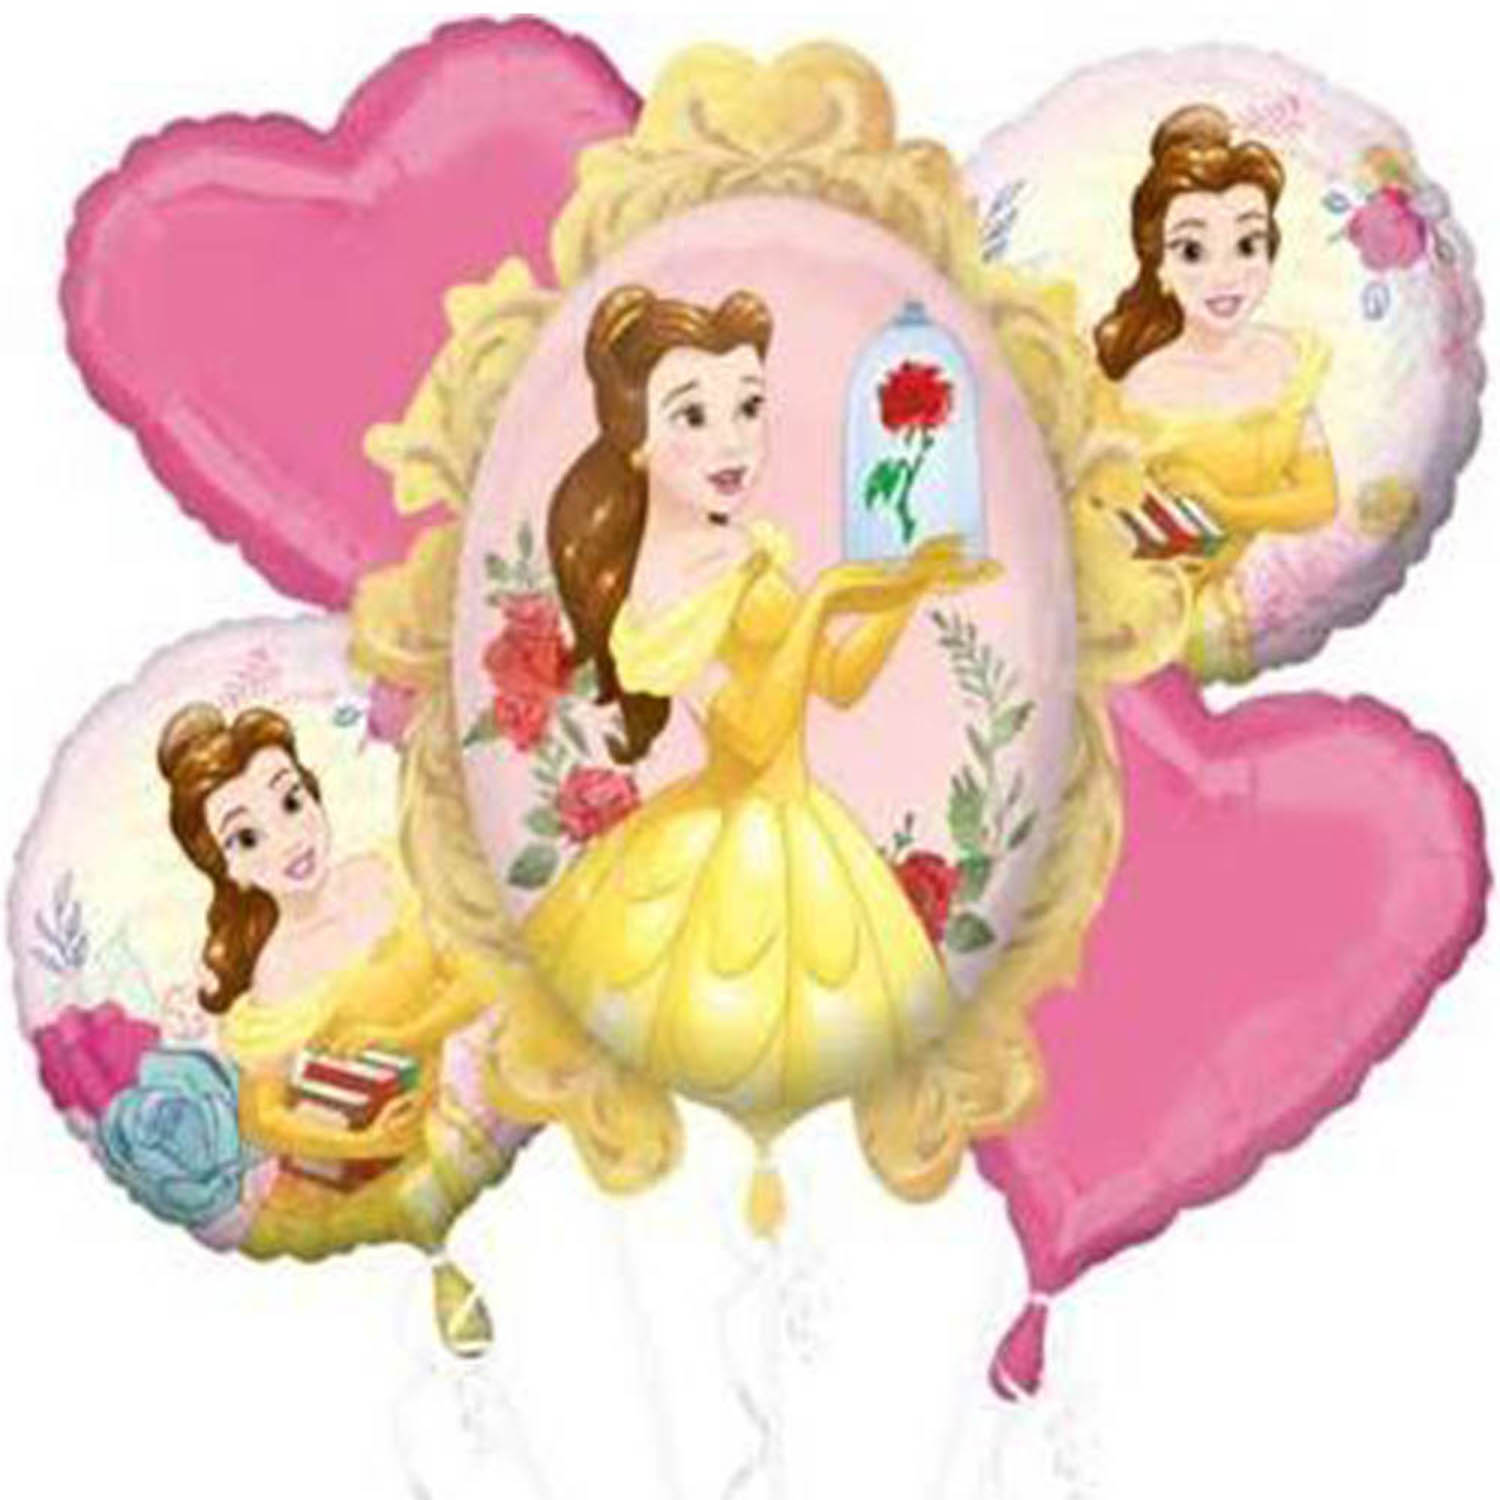 Disney Princess Belle Beauty and The Beast Authentic Licensed Theme Foil Balloon Bouquet